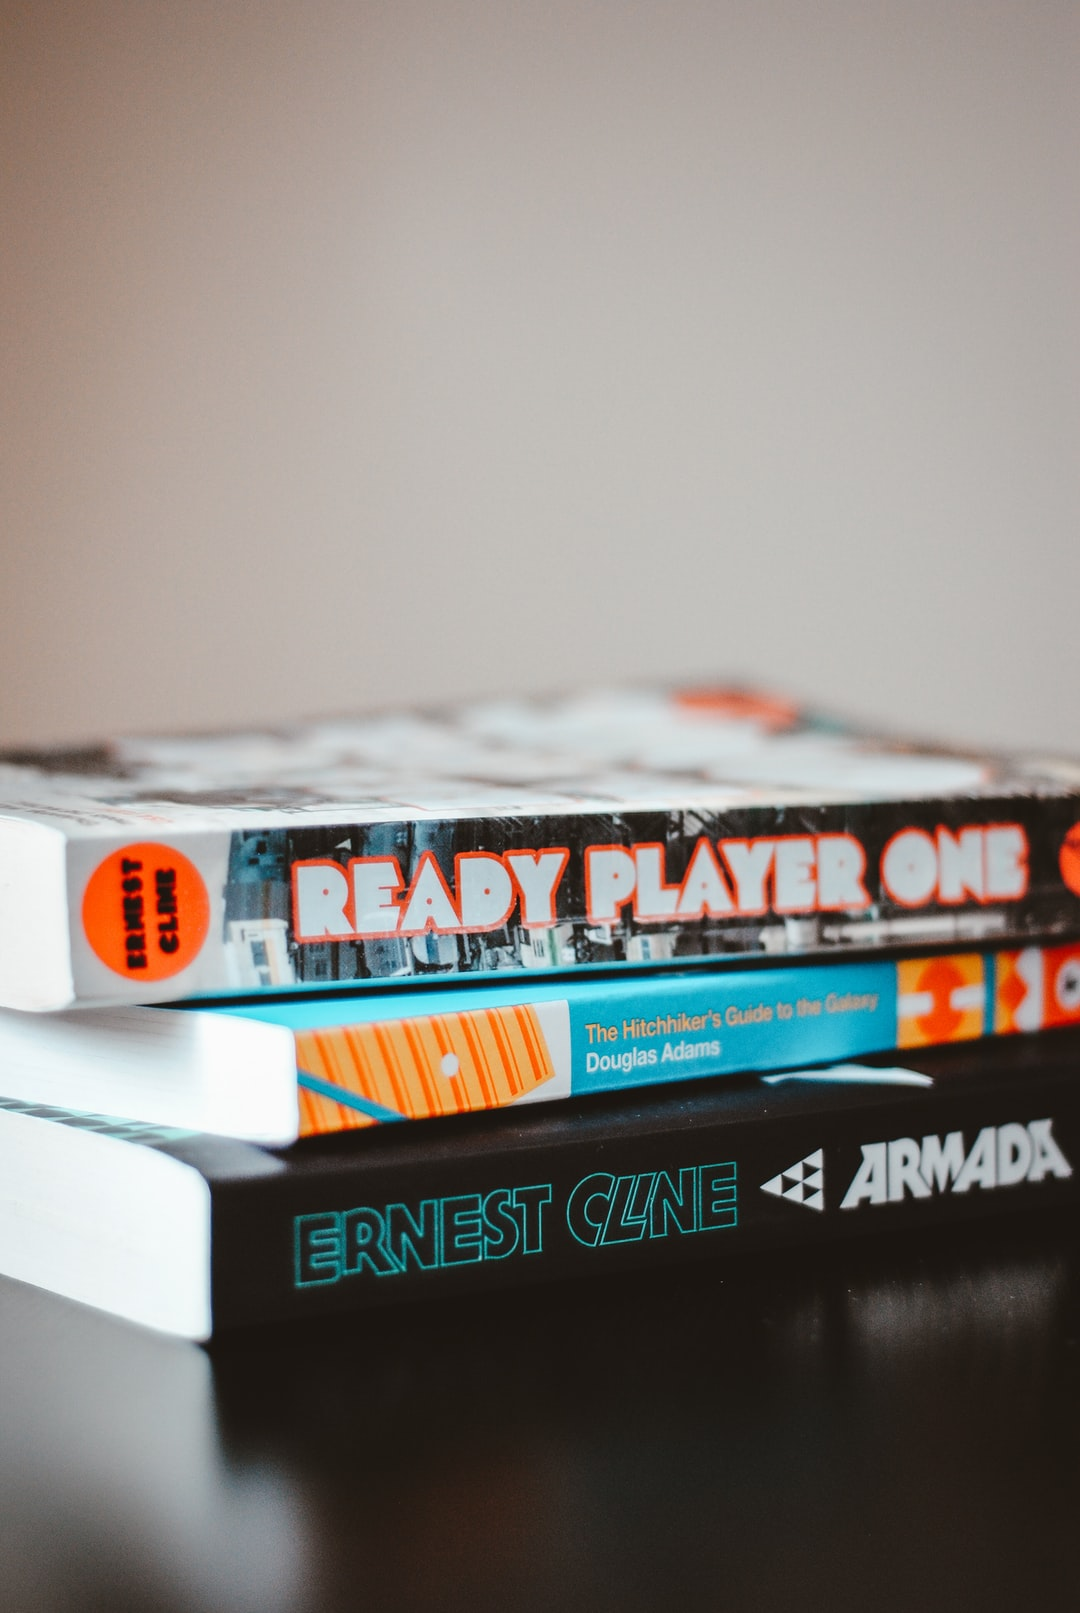 As a nerd and a gamer, my place is full to the rafters with nerdy literature.